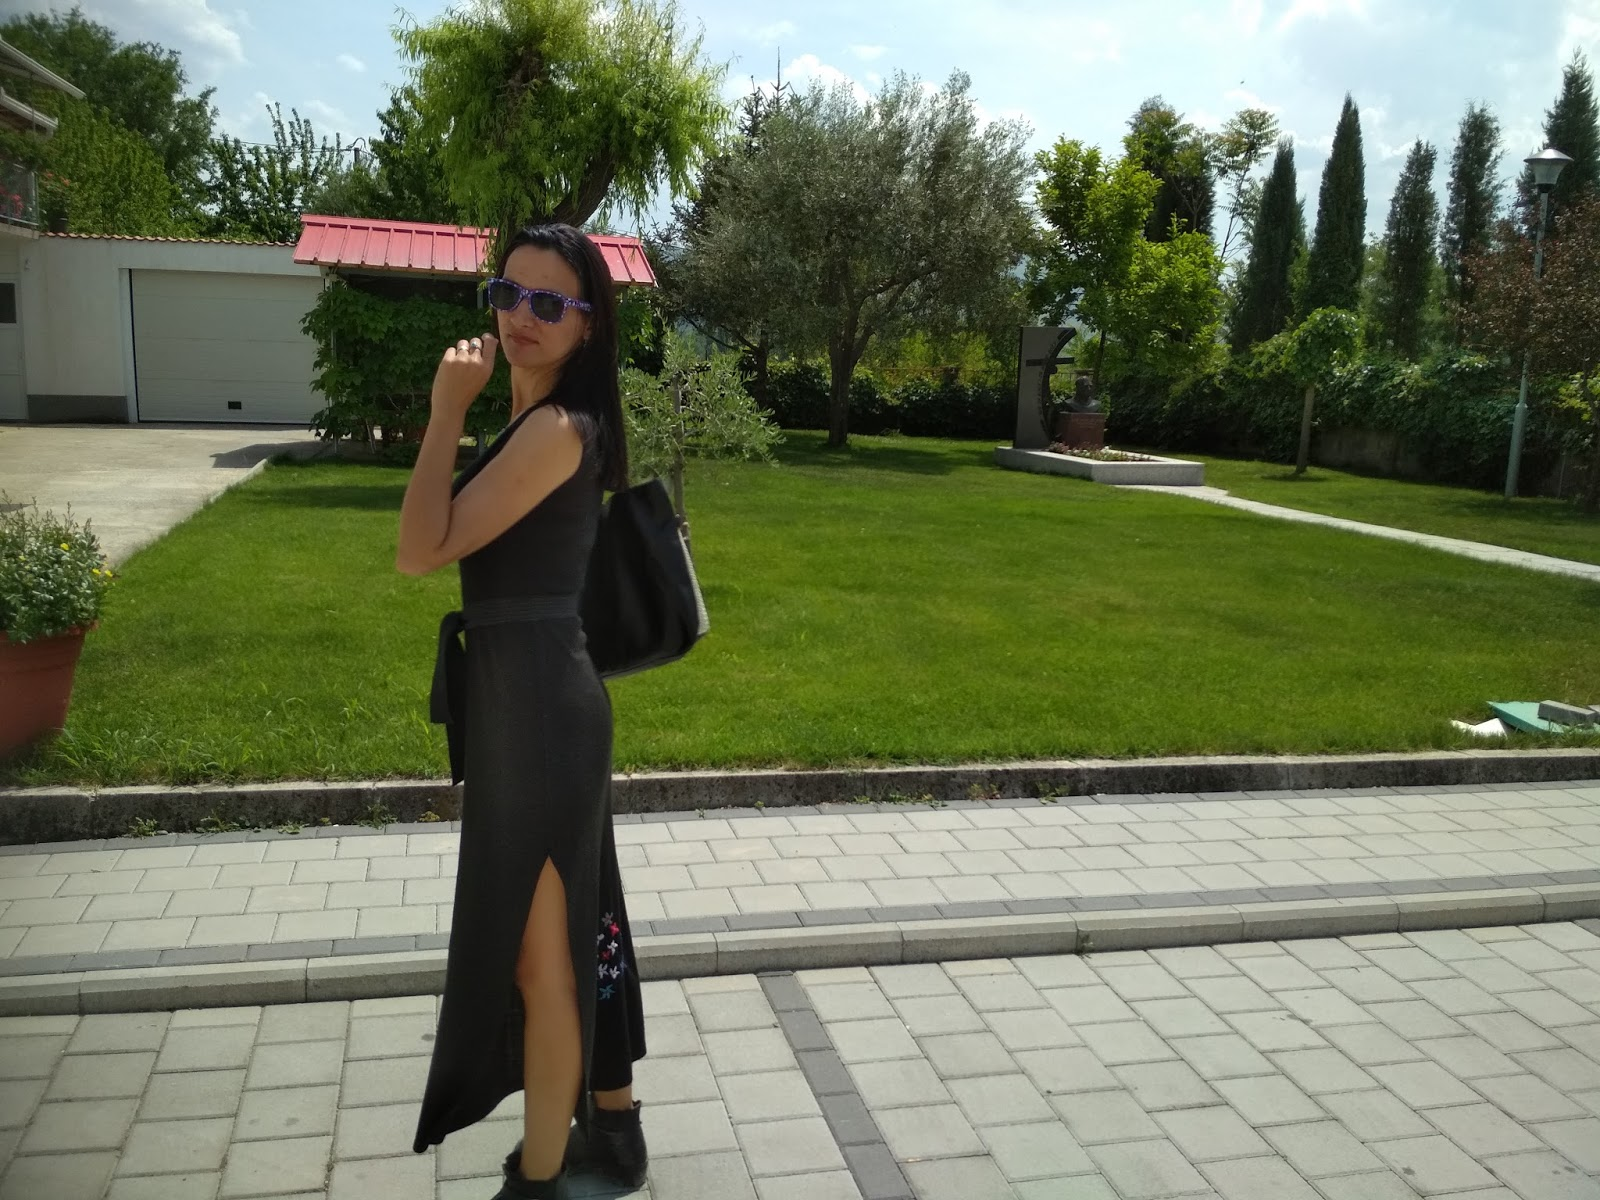 Black Maxi Dress For Spring + Visit To Buna river (BIH)